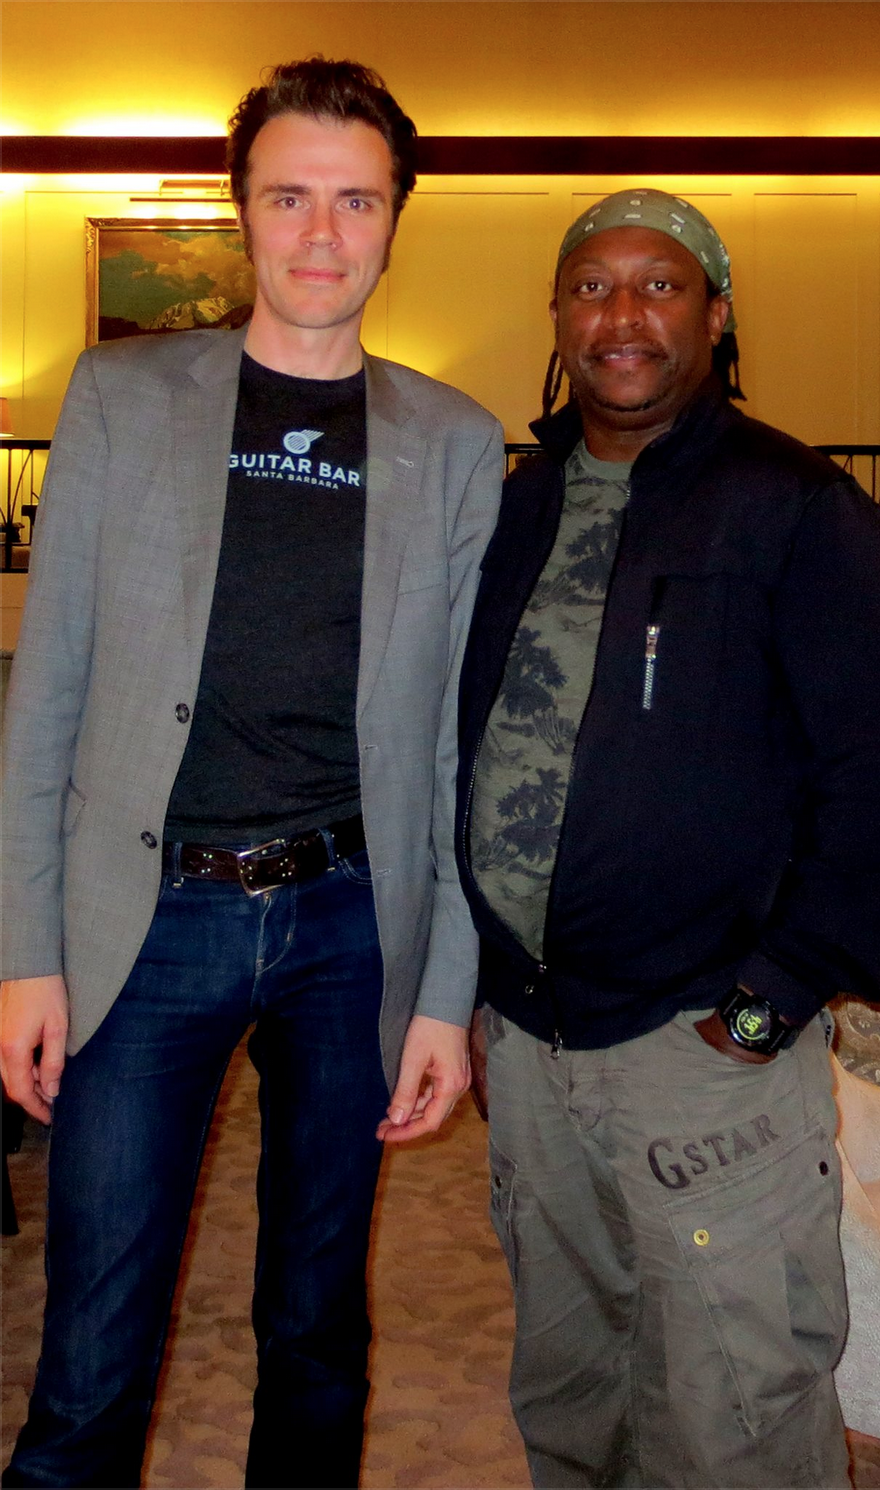 Ben Fulton with Darryl Jones during the 2015 Rolling Stones tour of New Zealand. To read more about Darryl's amazing musical history, click here.